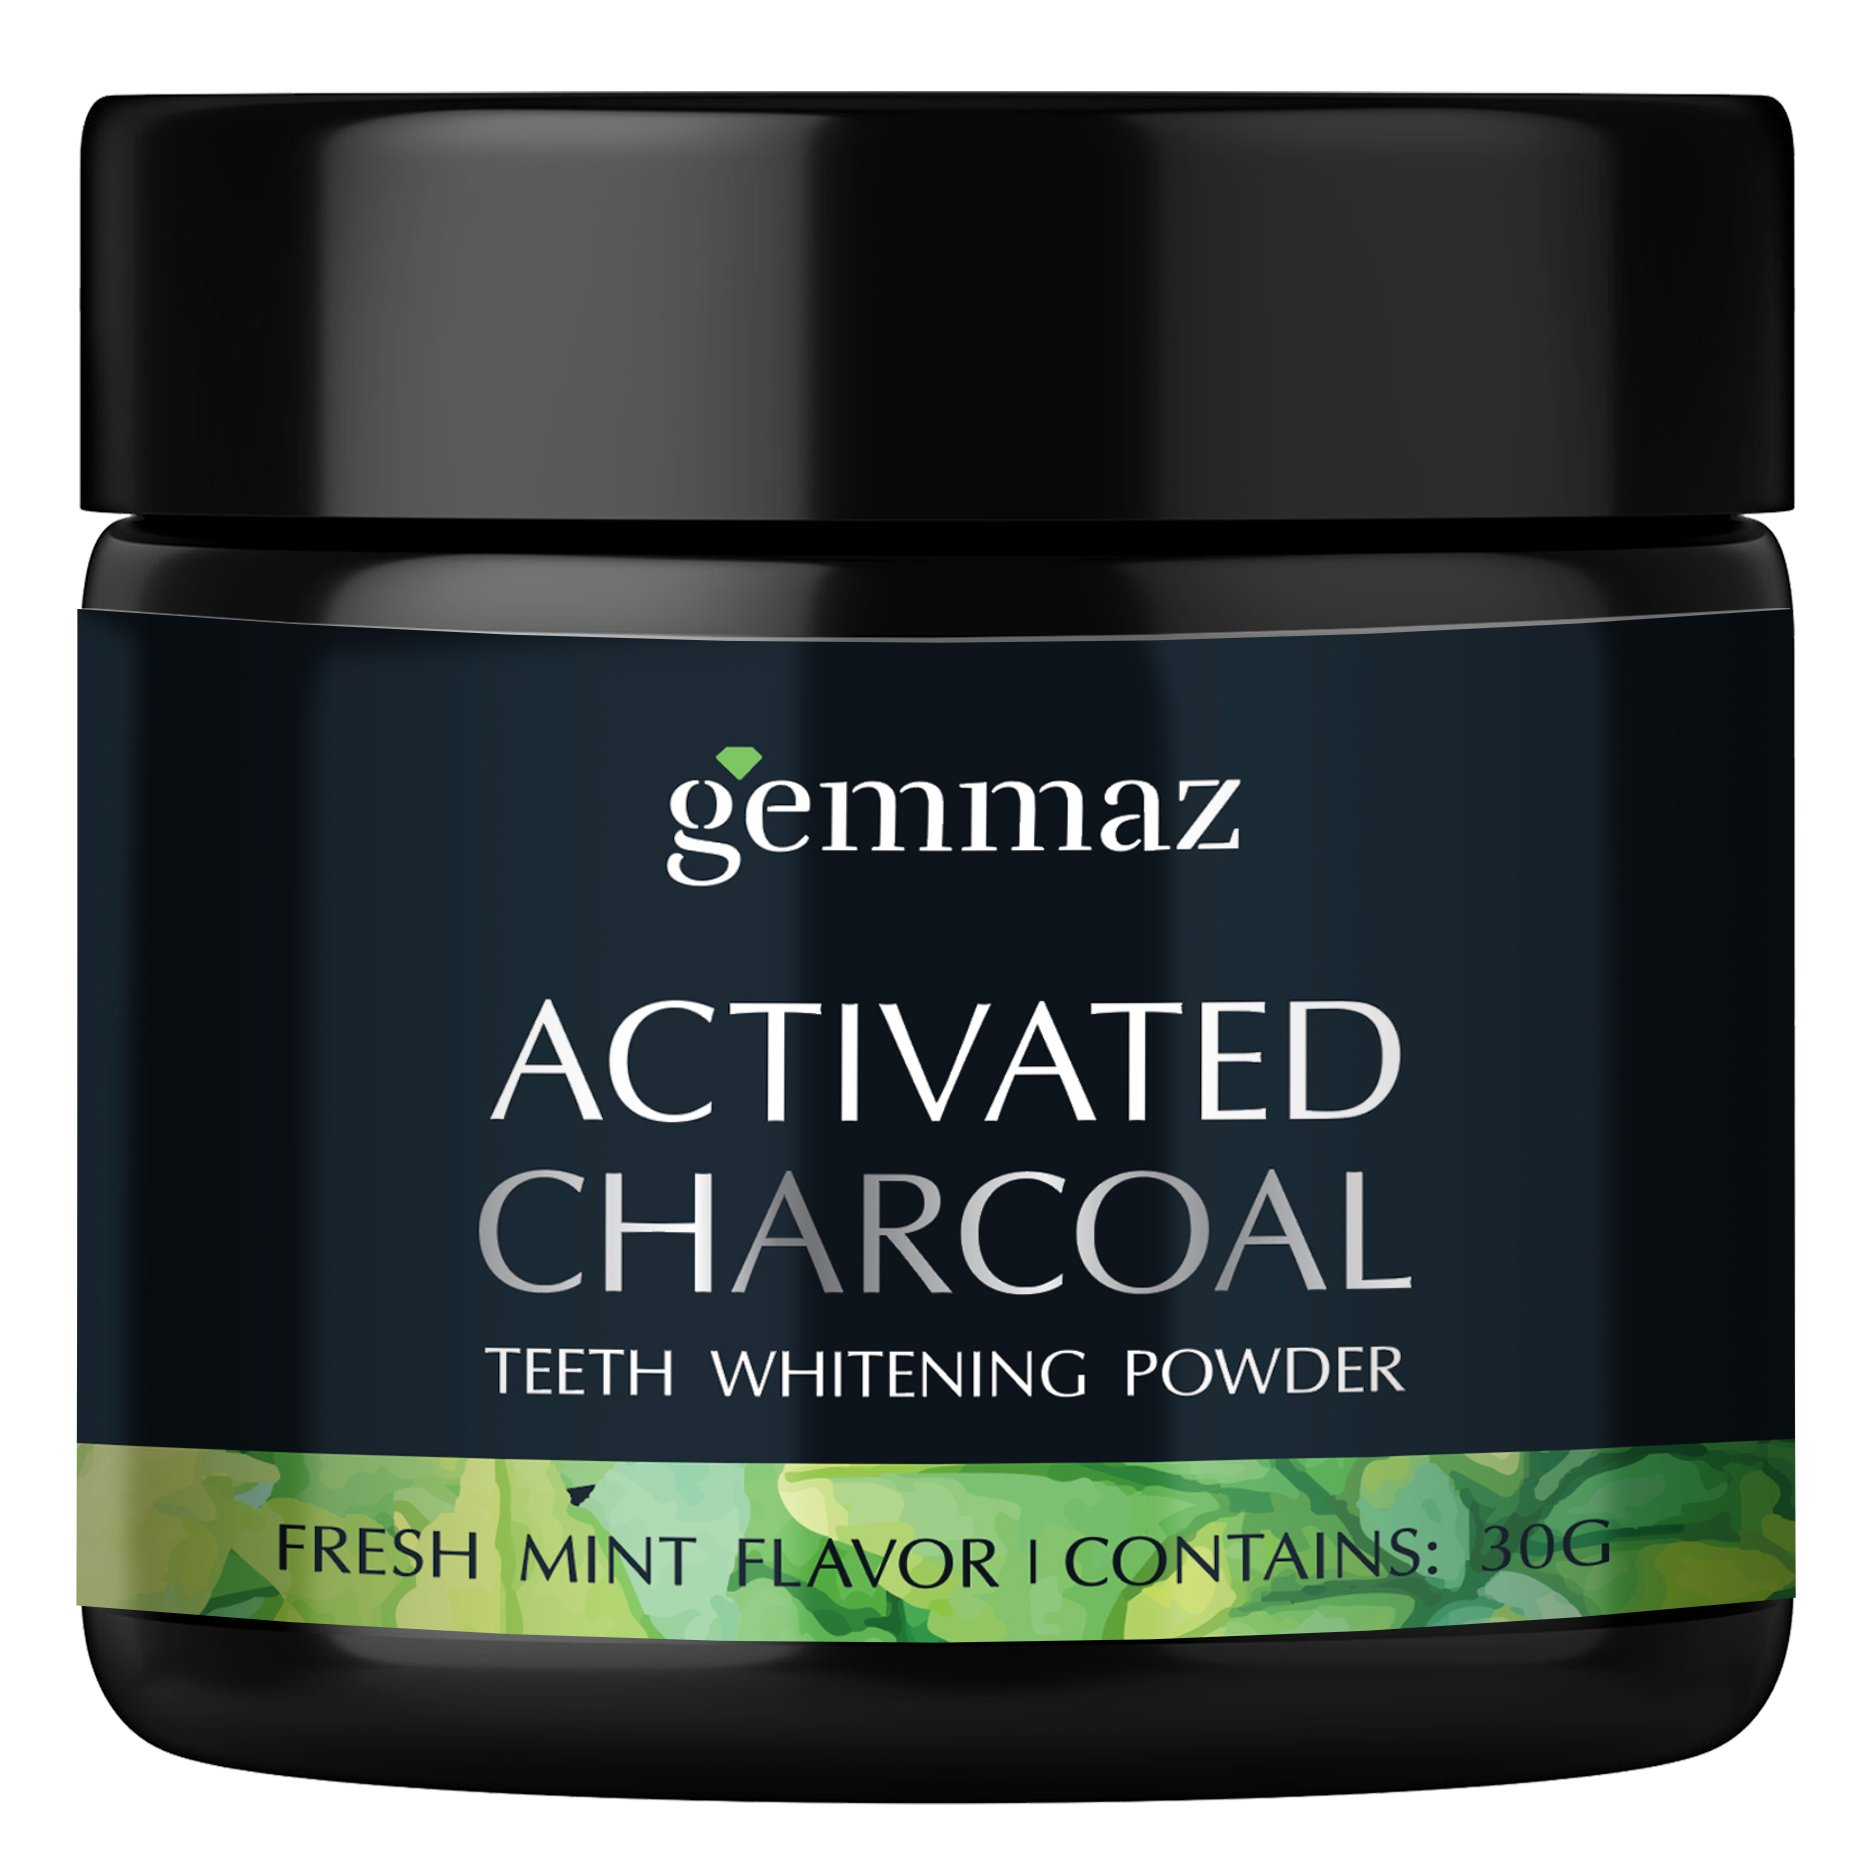 Charcoal Teeth Whitening Powder, Organic Coconut Activated Charcoal Teeth Whitening, Enamel Safe Teeth Whitener for Sensitive Teeth Gums, Fresh Mint Flavor by Gemmaz (30g)